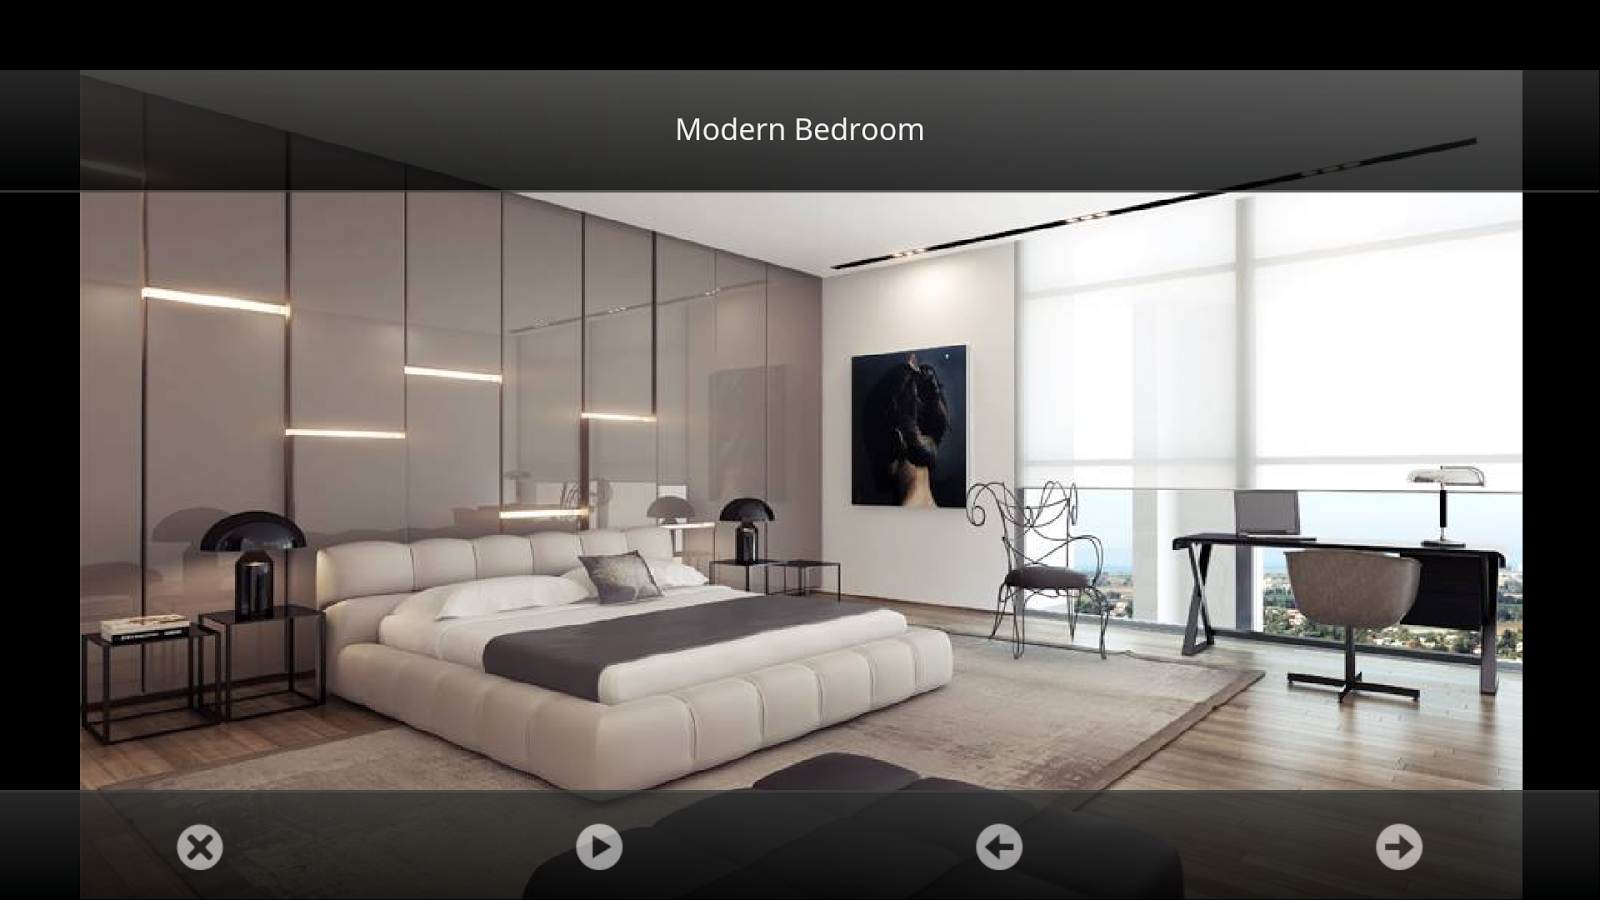 bedroom decorating ideas screenshot - Bedroom Room Decorating Ideas